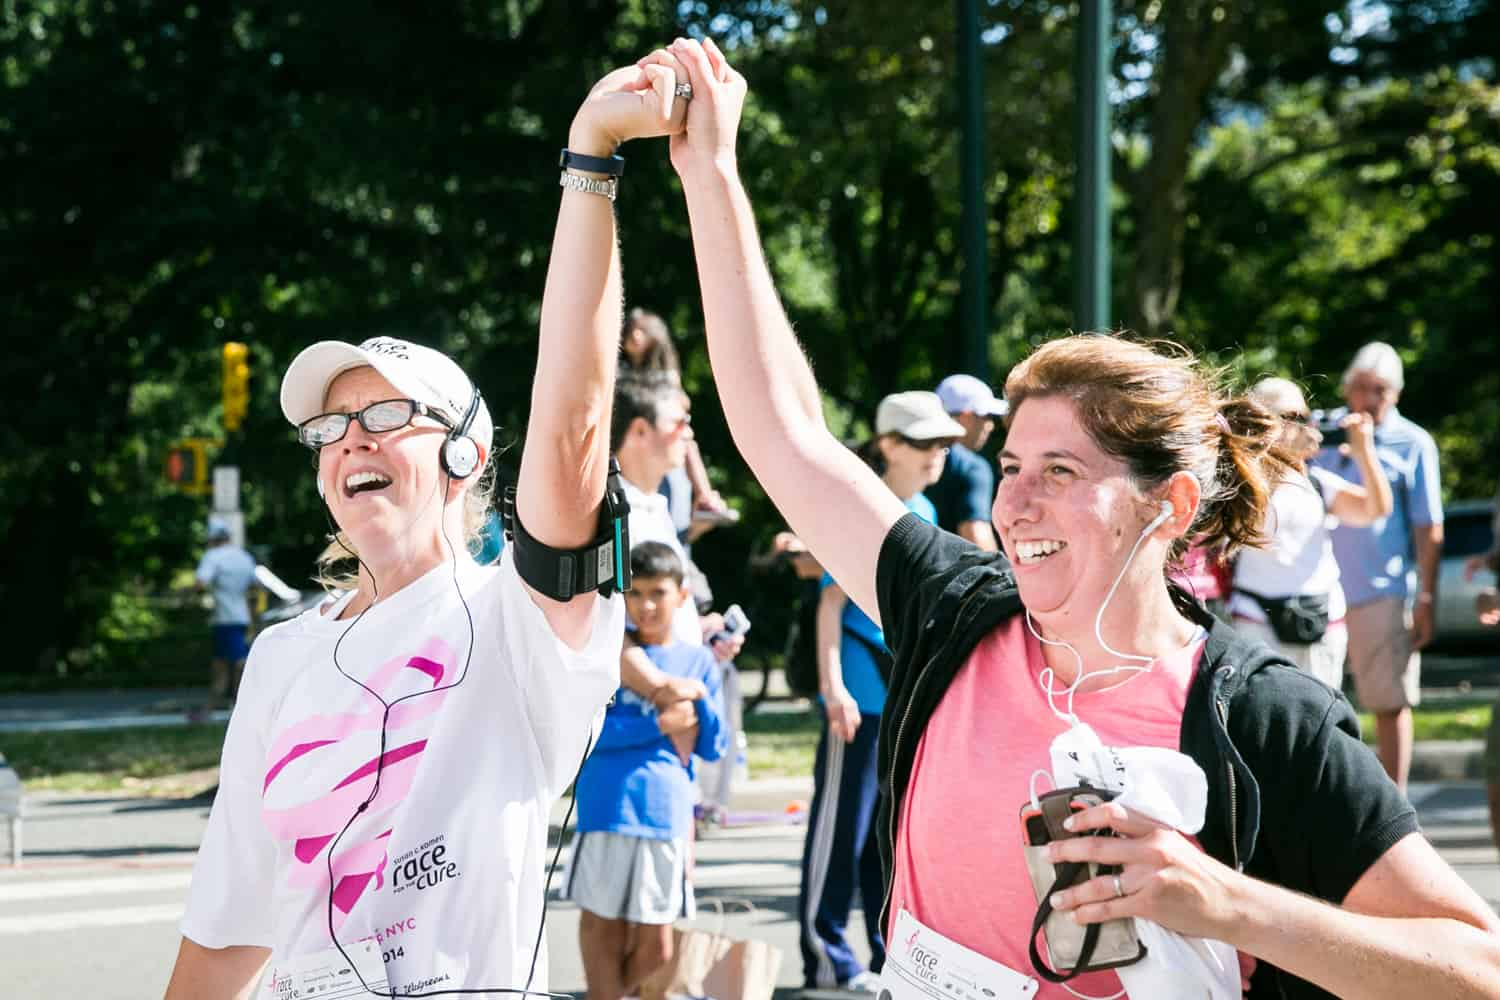 NYC Race for the Cure photos of two women crossing finish line with hands held in air